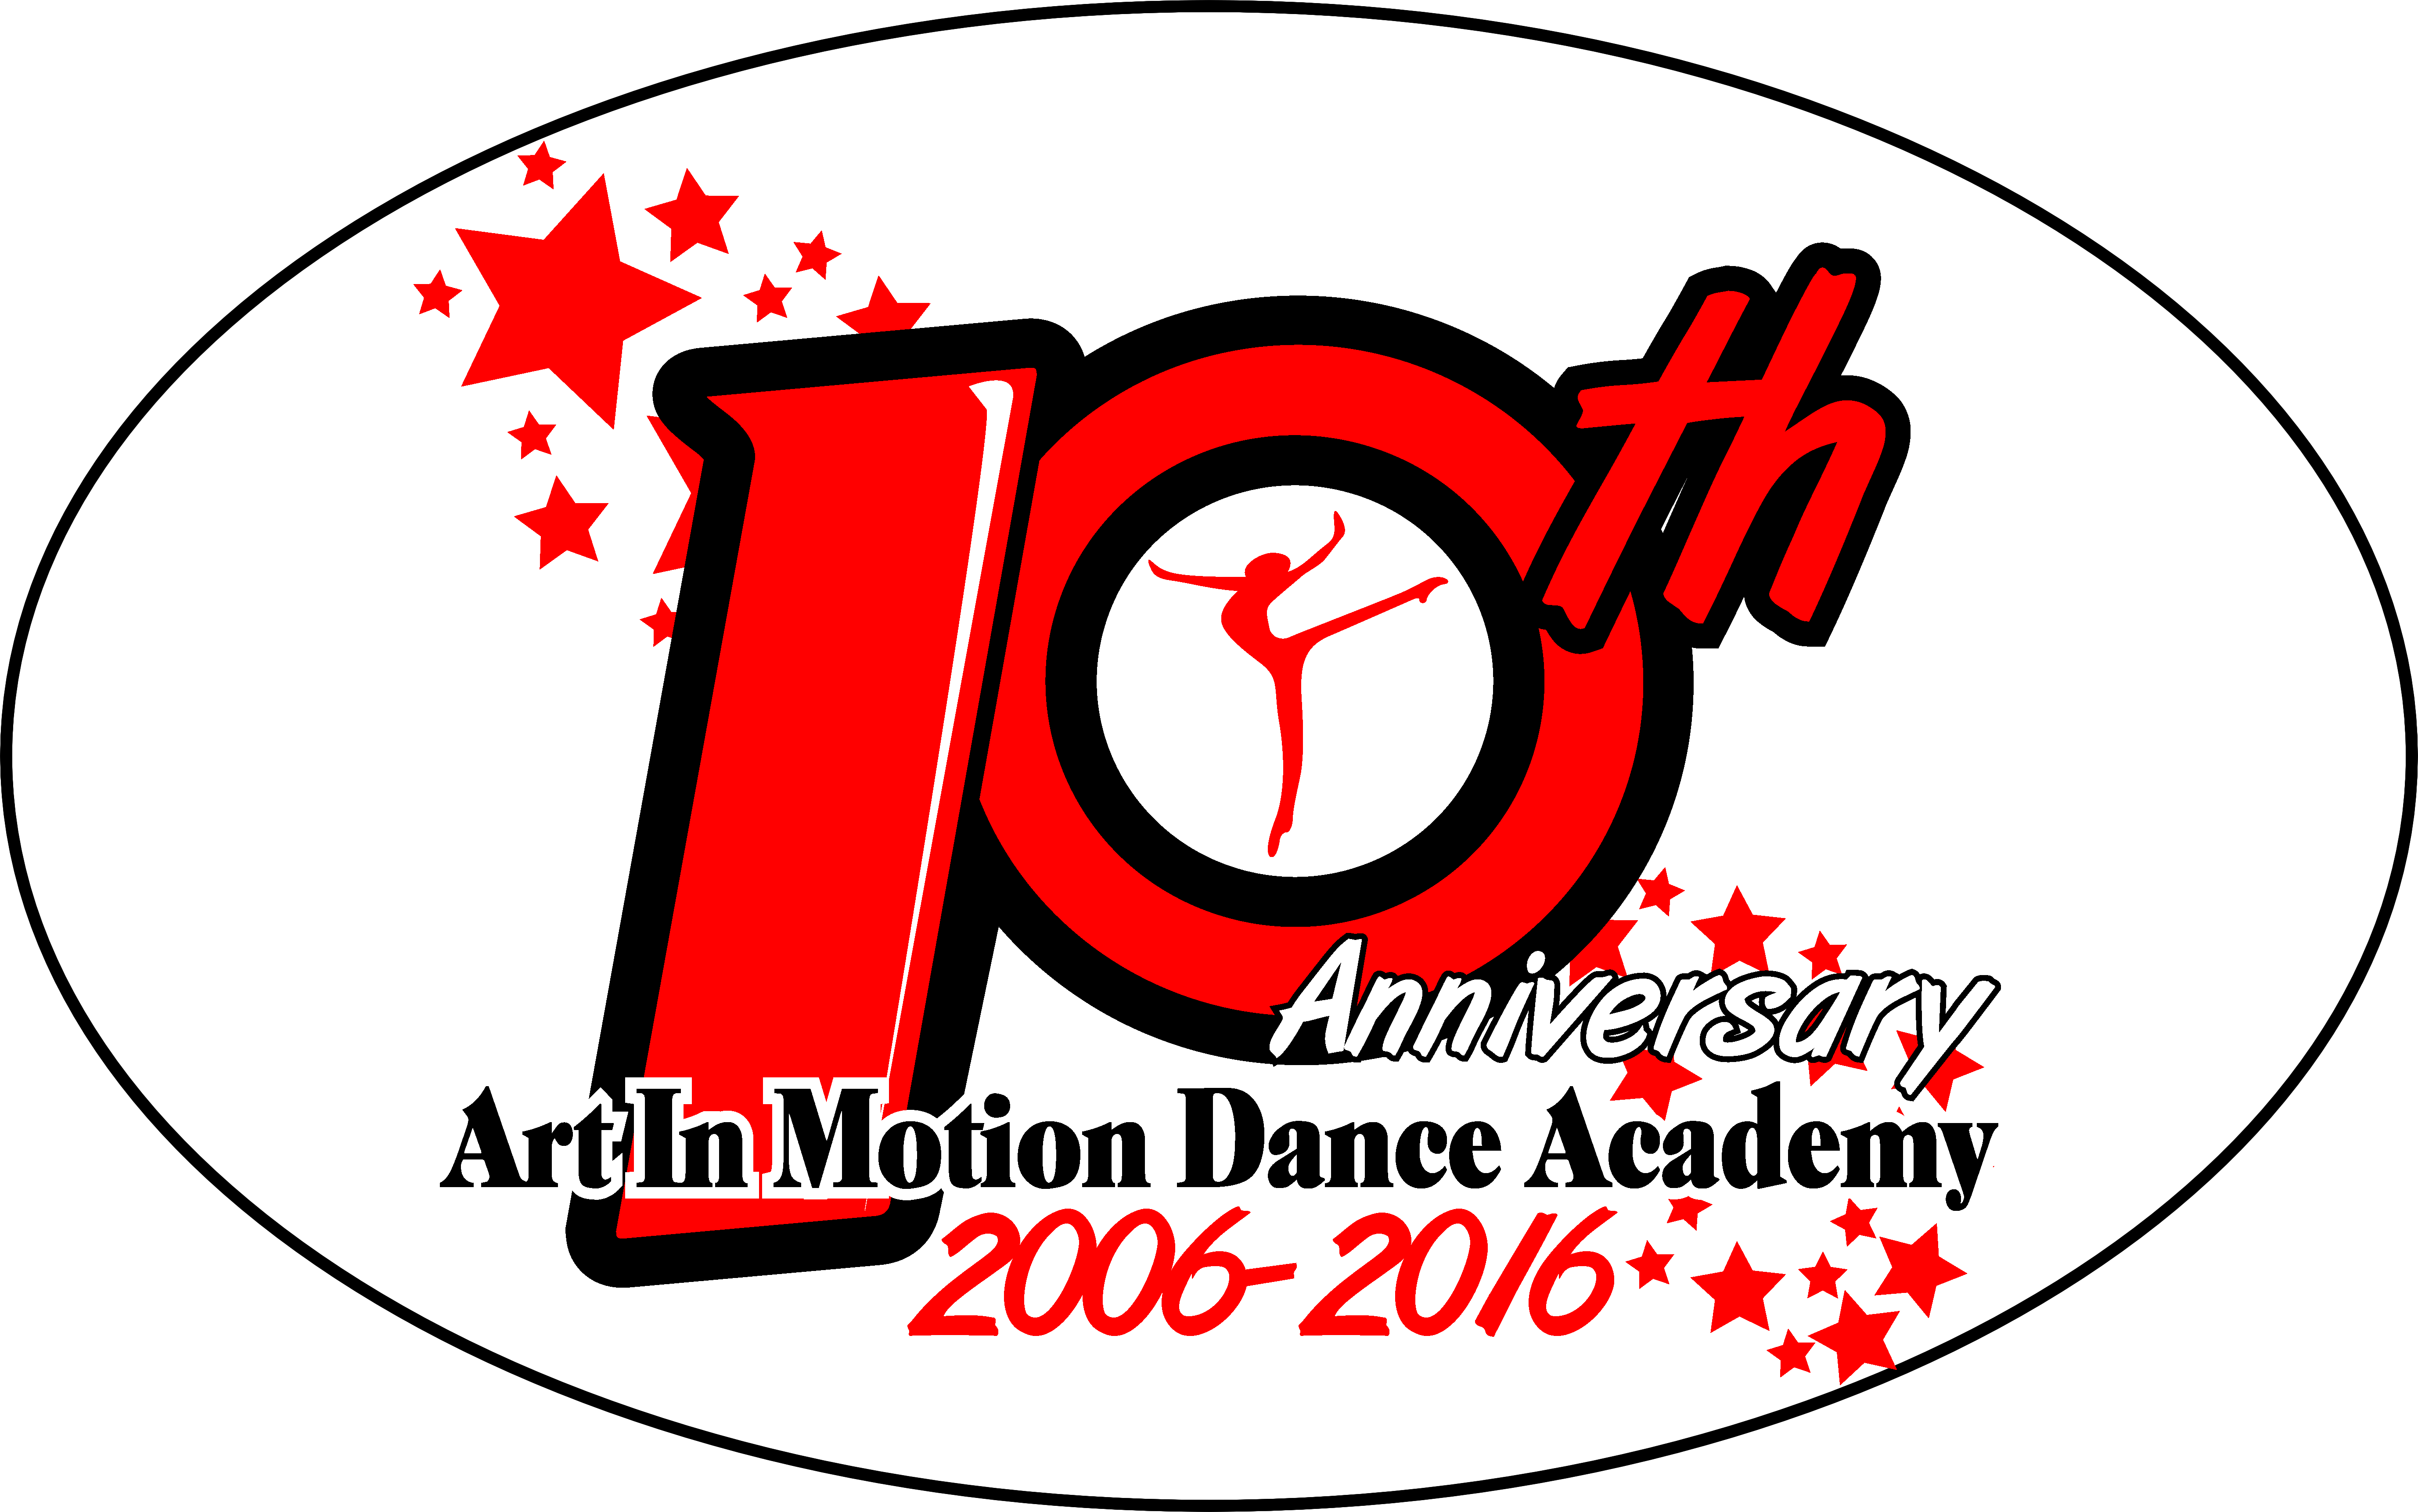 AMDA 10 YEAR ANNIVERSARY - CELEBRATING 10 YEARS OF DANCE EDUCATION AND EXCELLENCE!